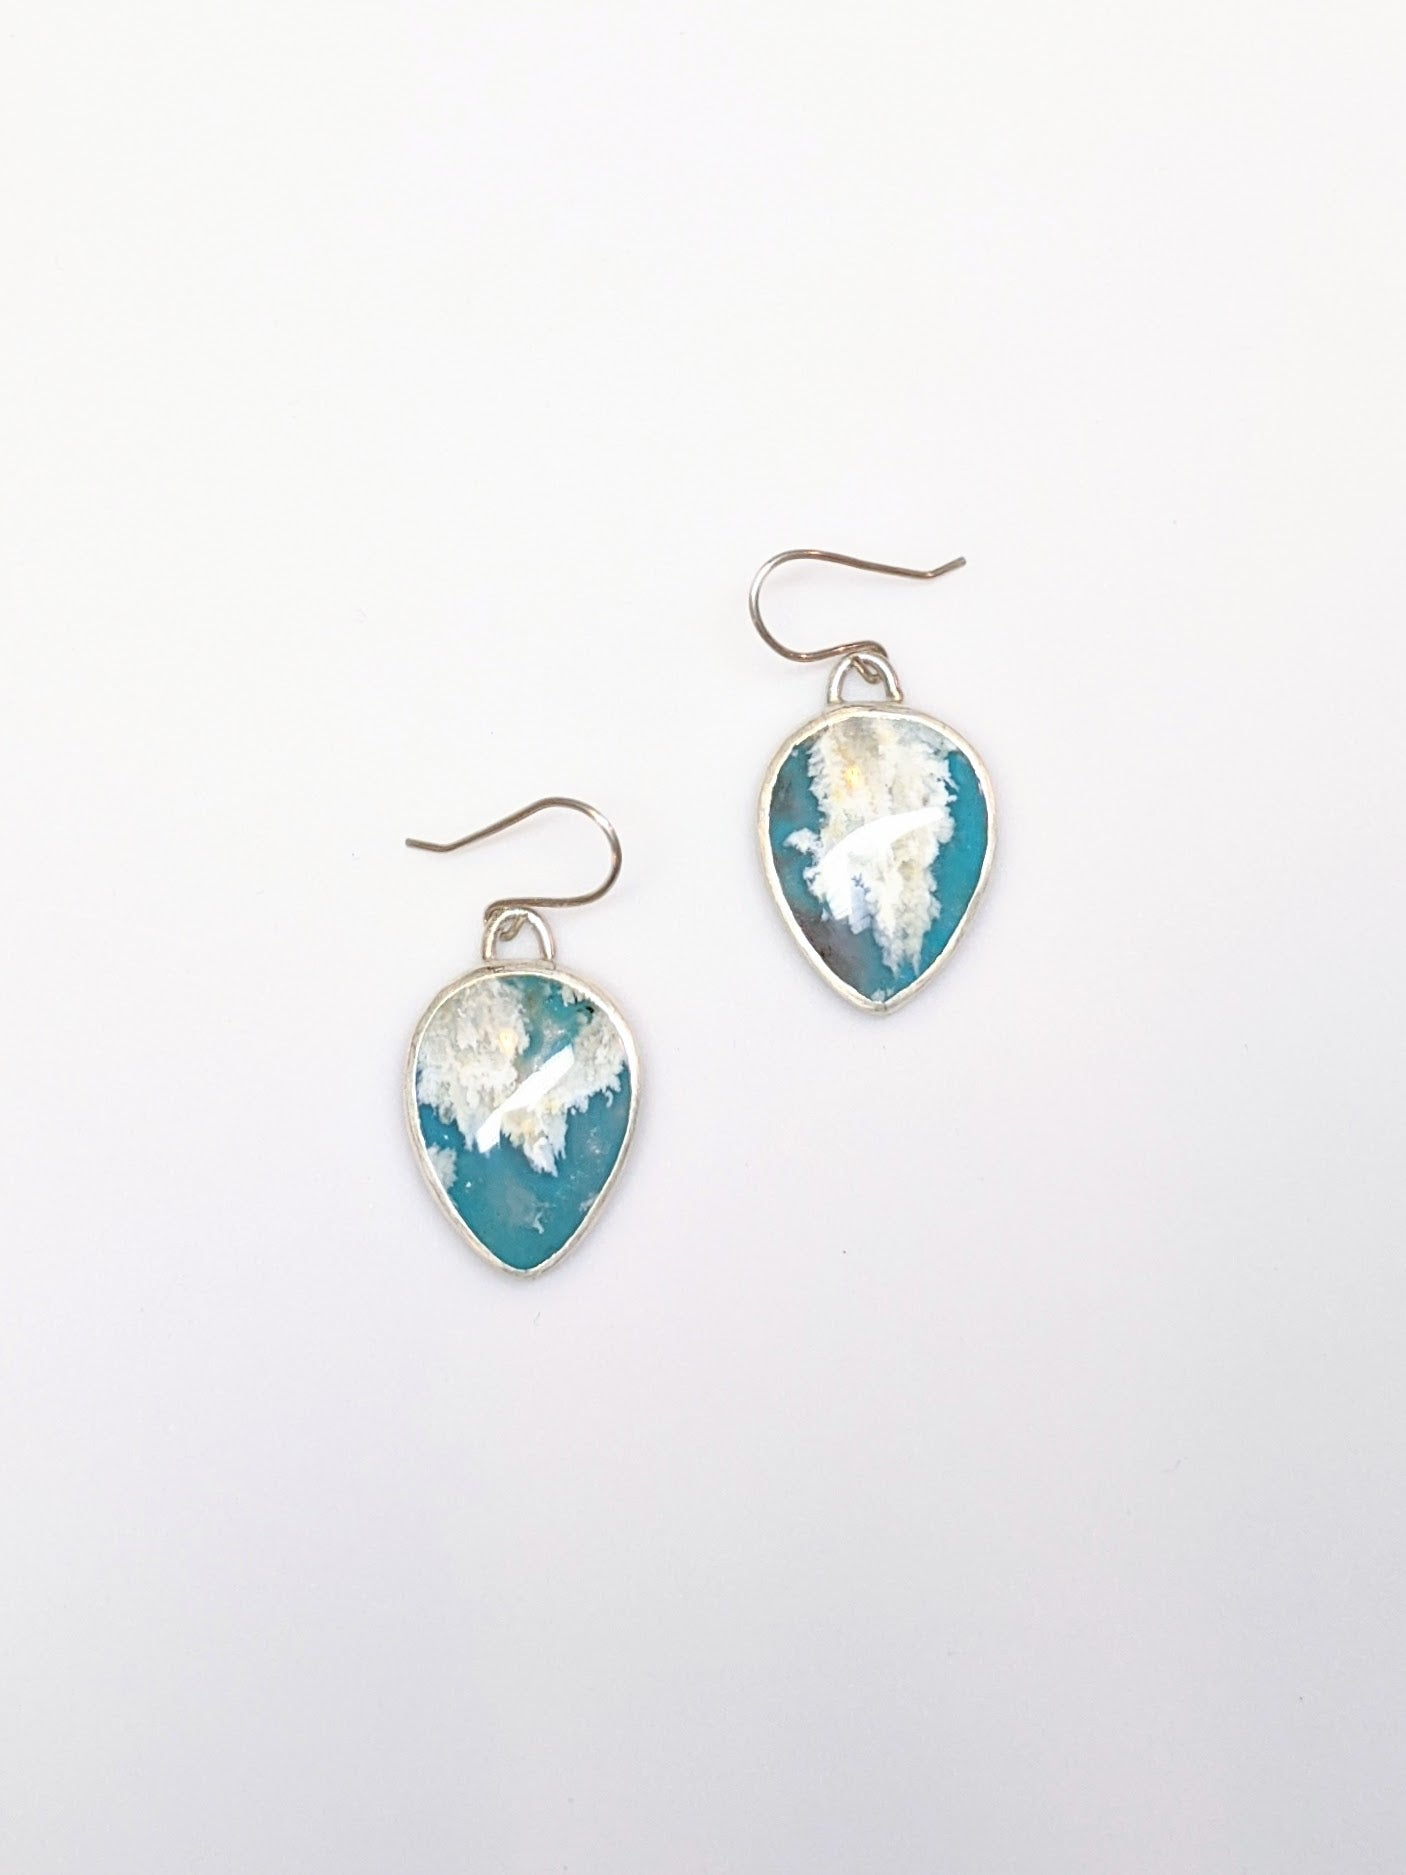 Turquoise & Coral Sea Agate Cloud Earrings